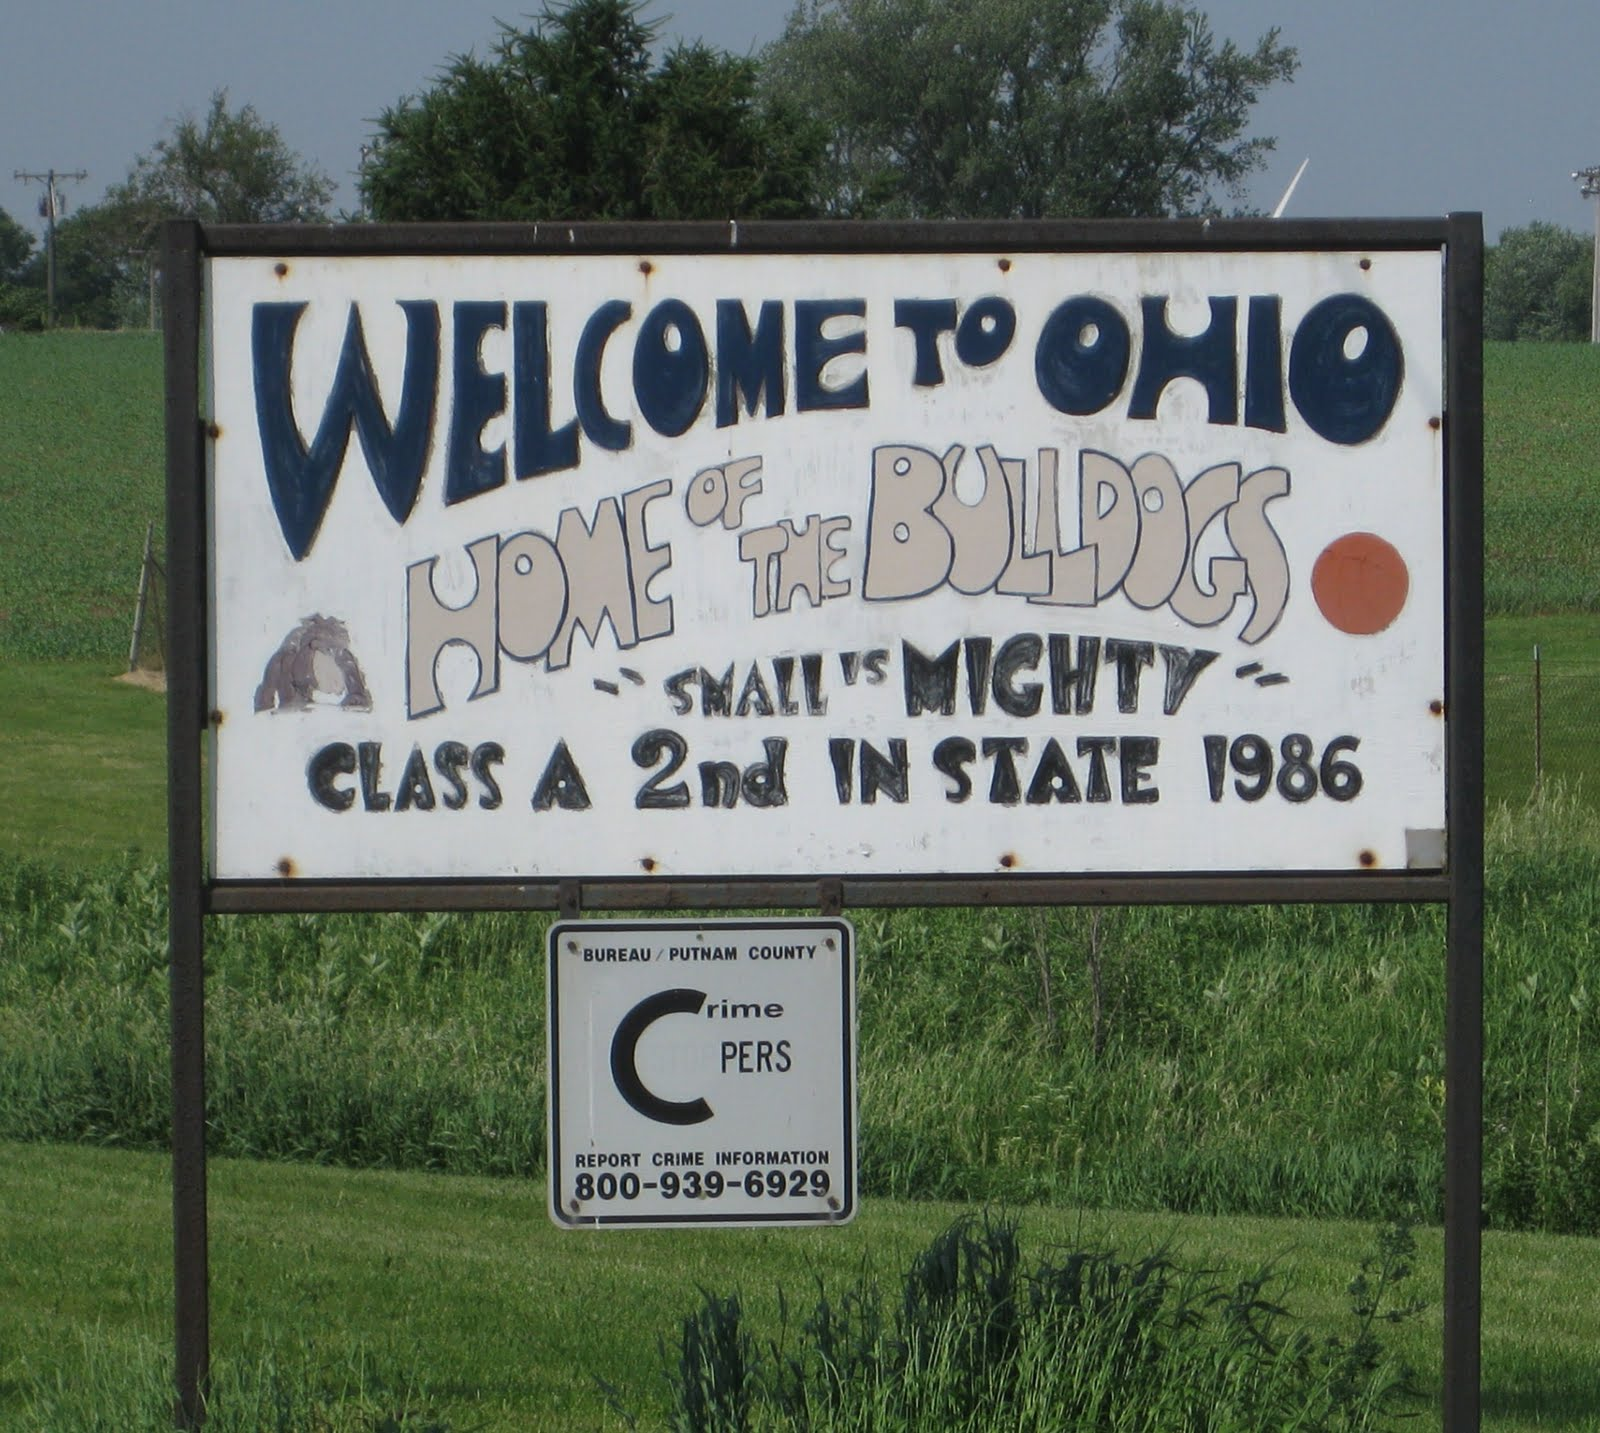 Illinois bureau county ohio - Like Princeton The Subject Of My Previous Post And Walnut The Next Stop It S In Bureau County Ohio With 540